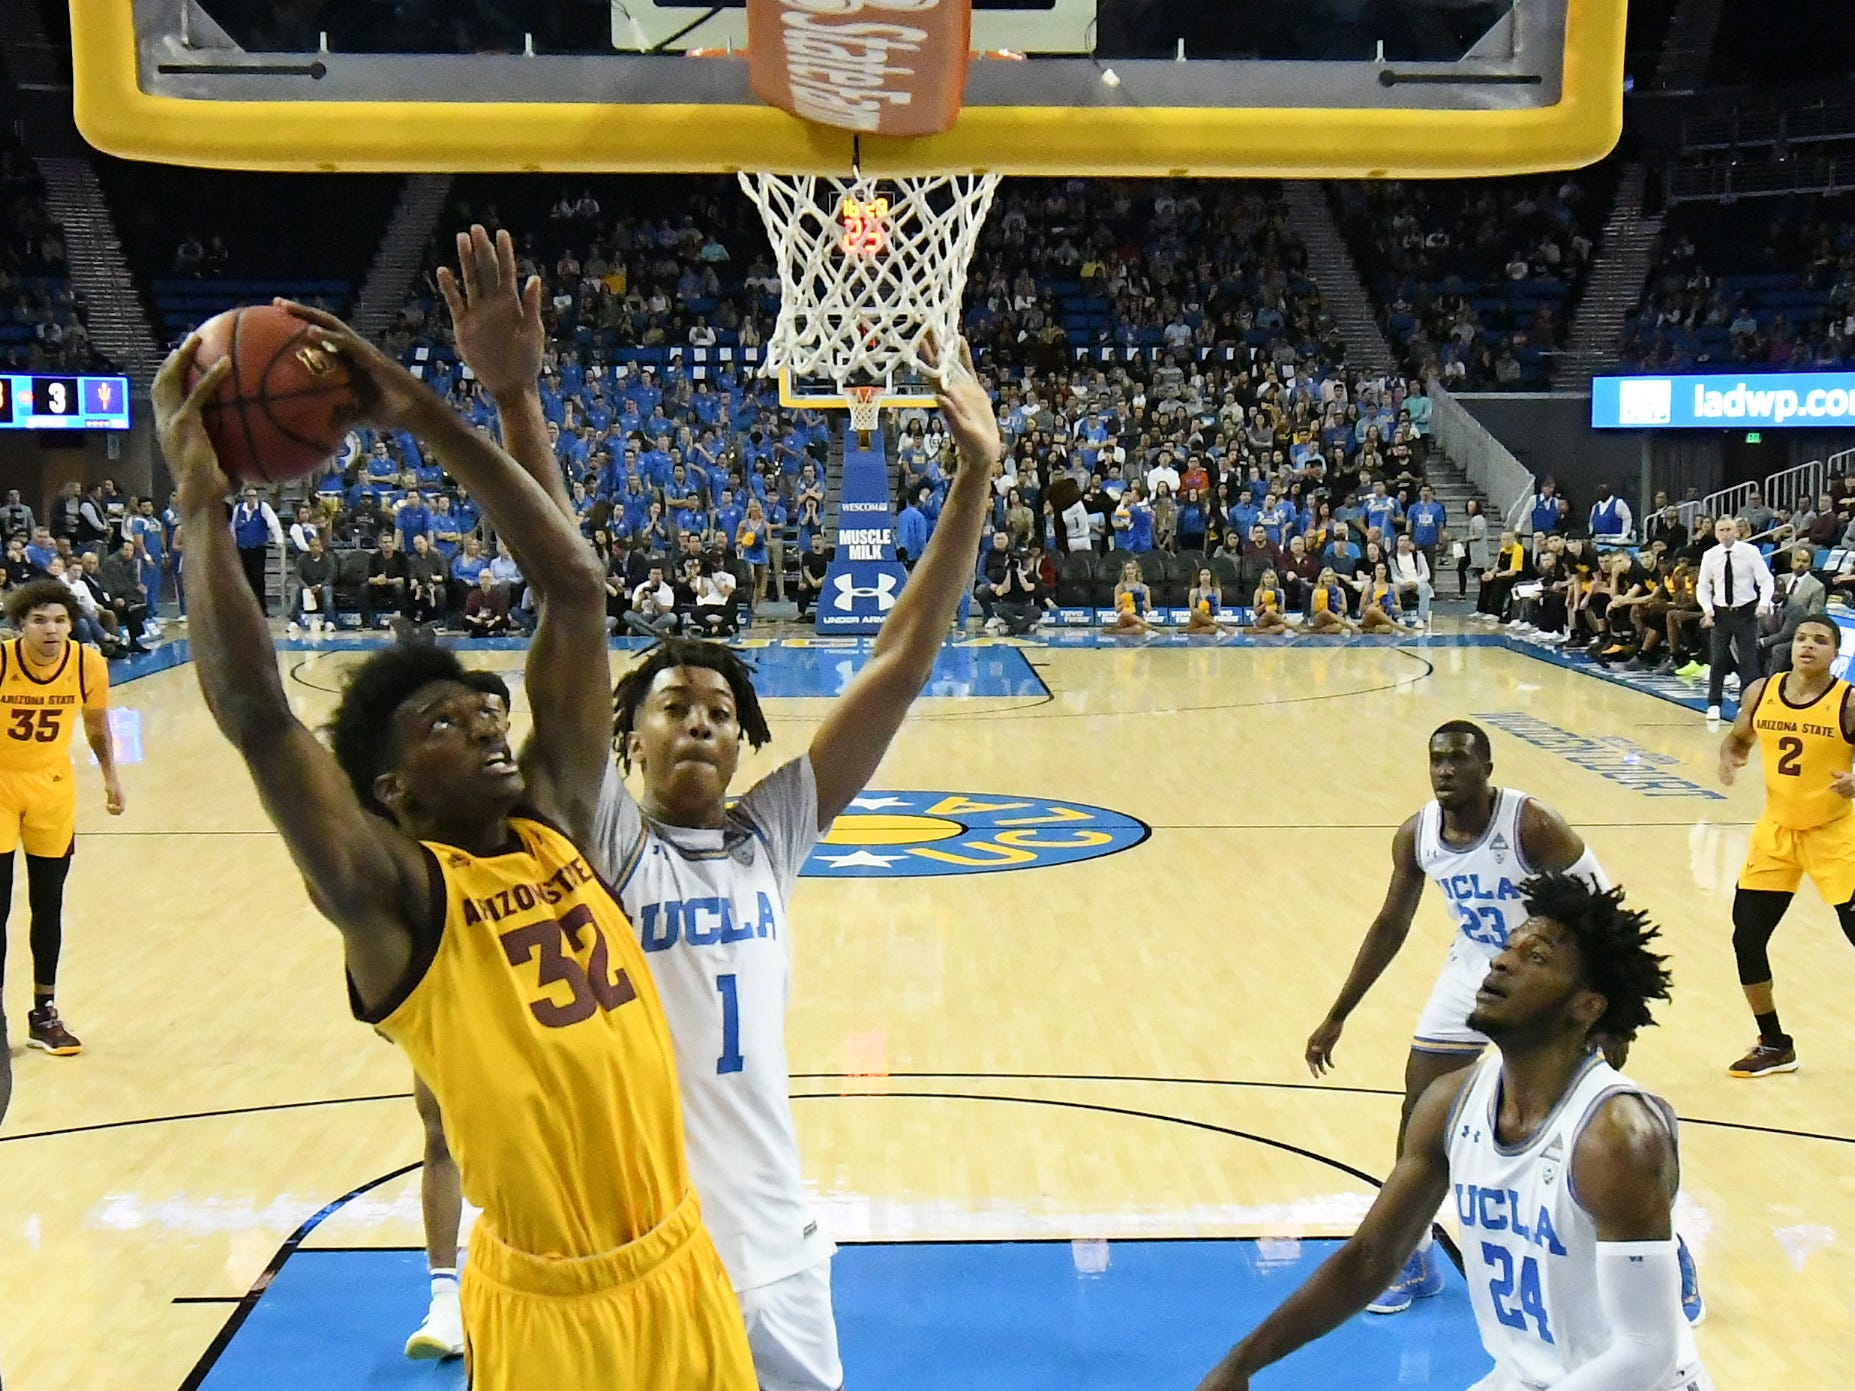 Jan 24, 2019; Los Angeles, CA, USA; Arizona State Sun Devils forward De'Quon Lake (32) shoots against UCLA Bruins center Moses Brown (1) and guard Jalen Hill (24) during the first half at Pauley Pavilion. Mandatory Credit: Richard Mackson-USA TODAY Sports